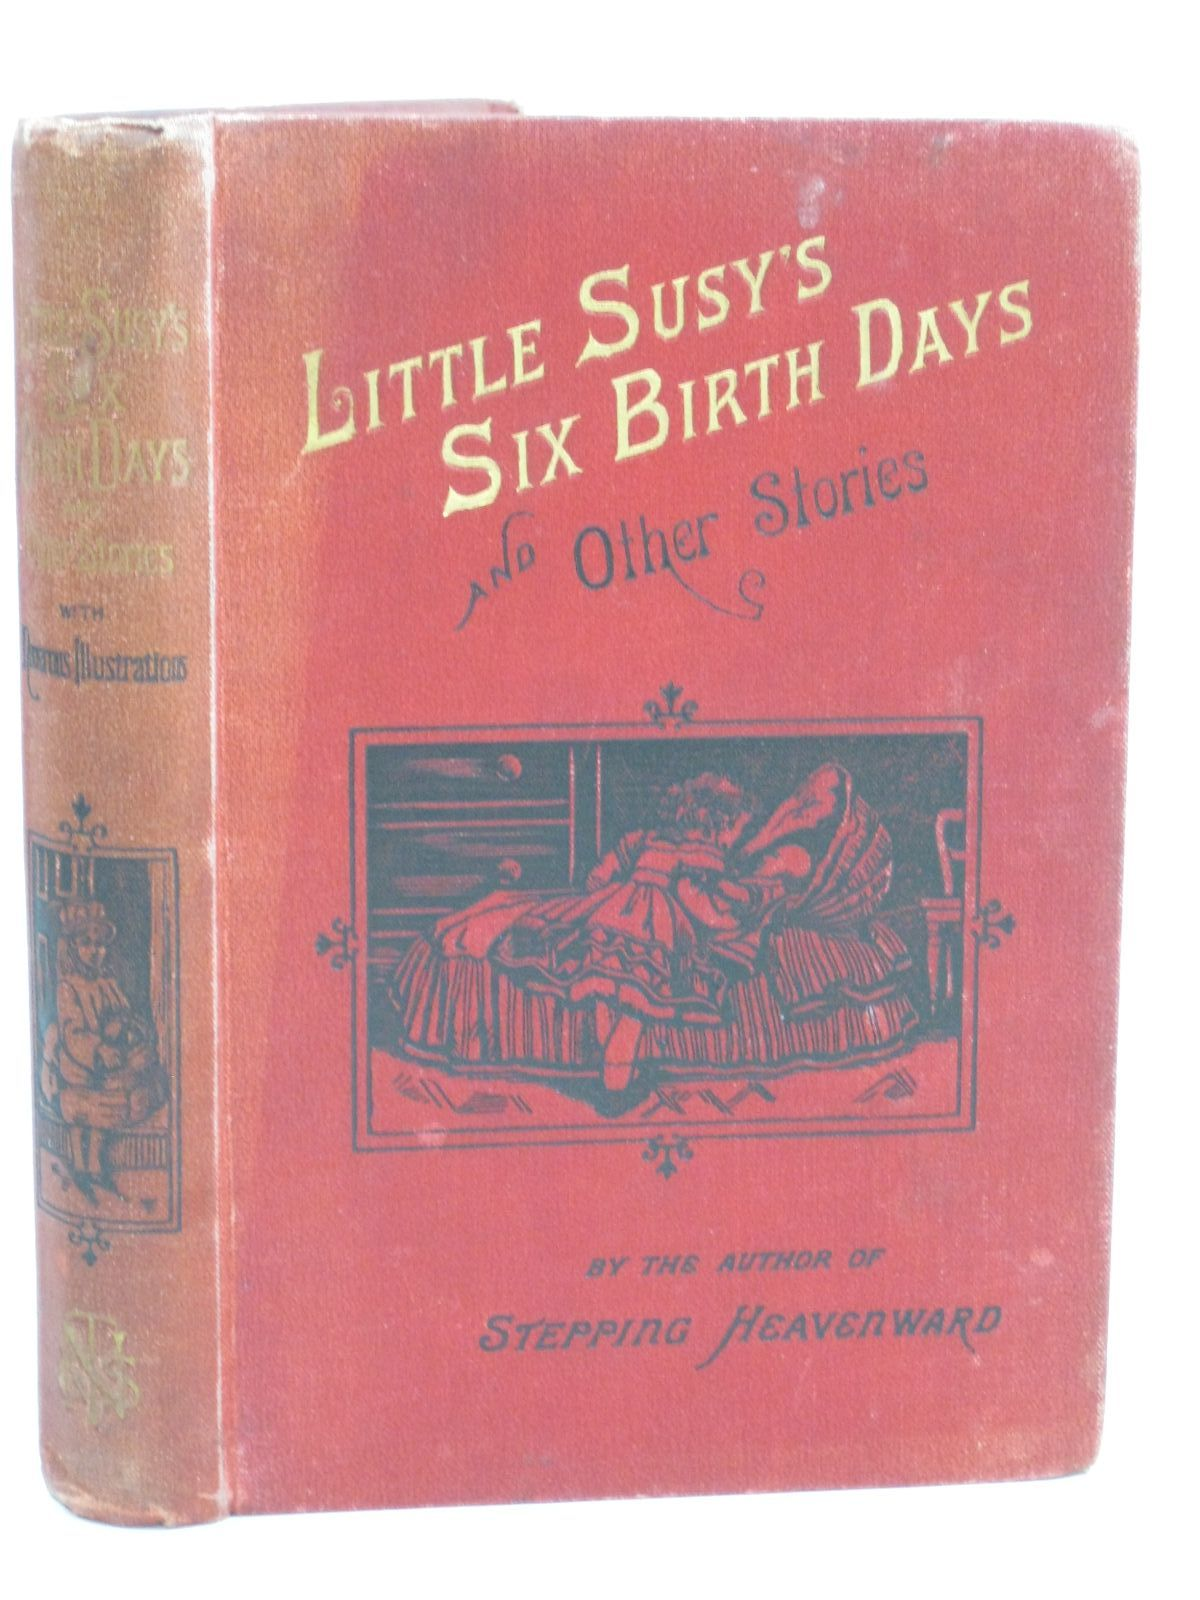 Photo of LITTLE SUSY'S SIX BIRTHDAYS AND OTHER STORIES written by Prentiss, Elizabeth illustrated by Small, W. published by Thomas Nelson & Sons (STOCK CODE: 1505936)  for sale by Stella & Rose's Books